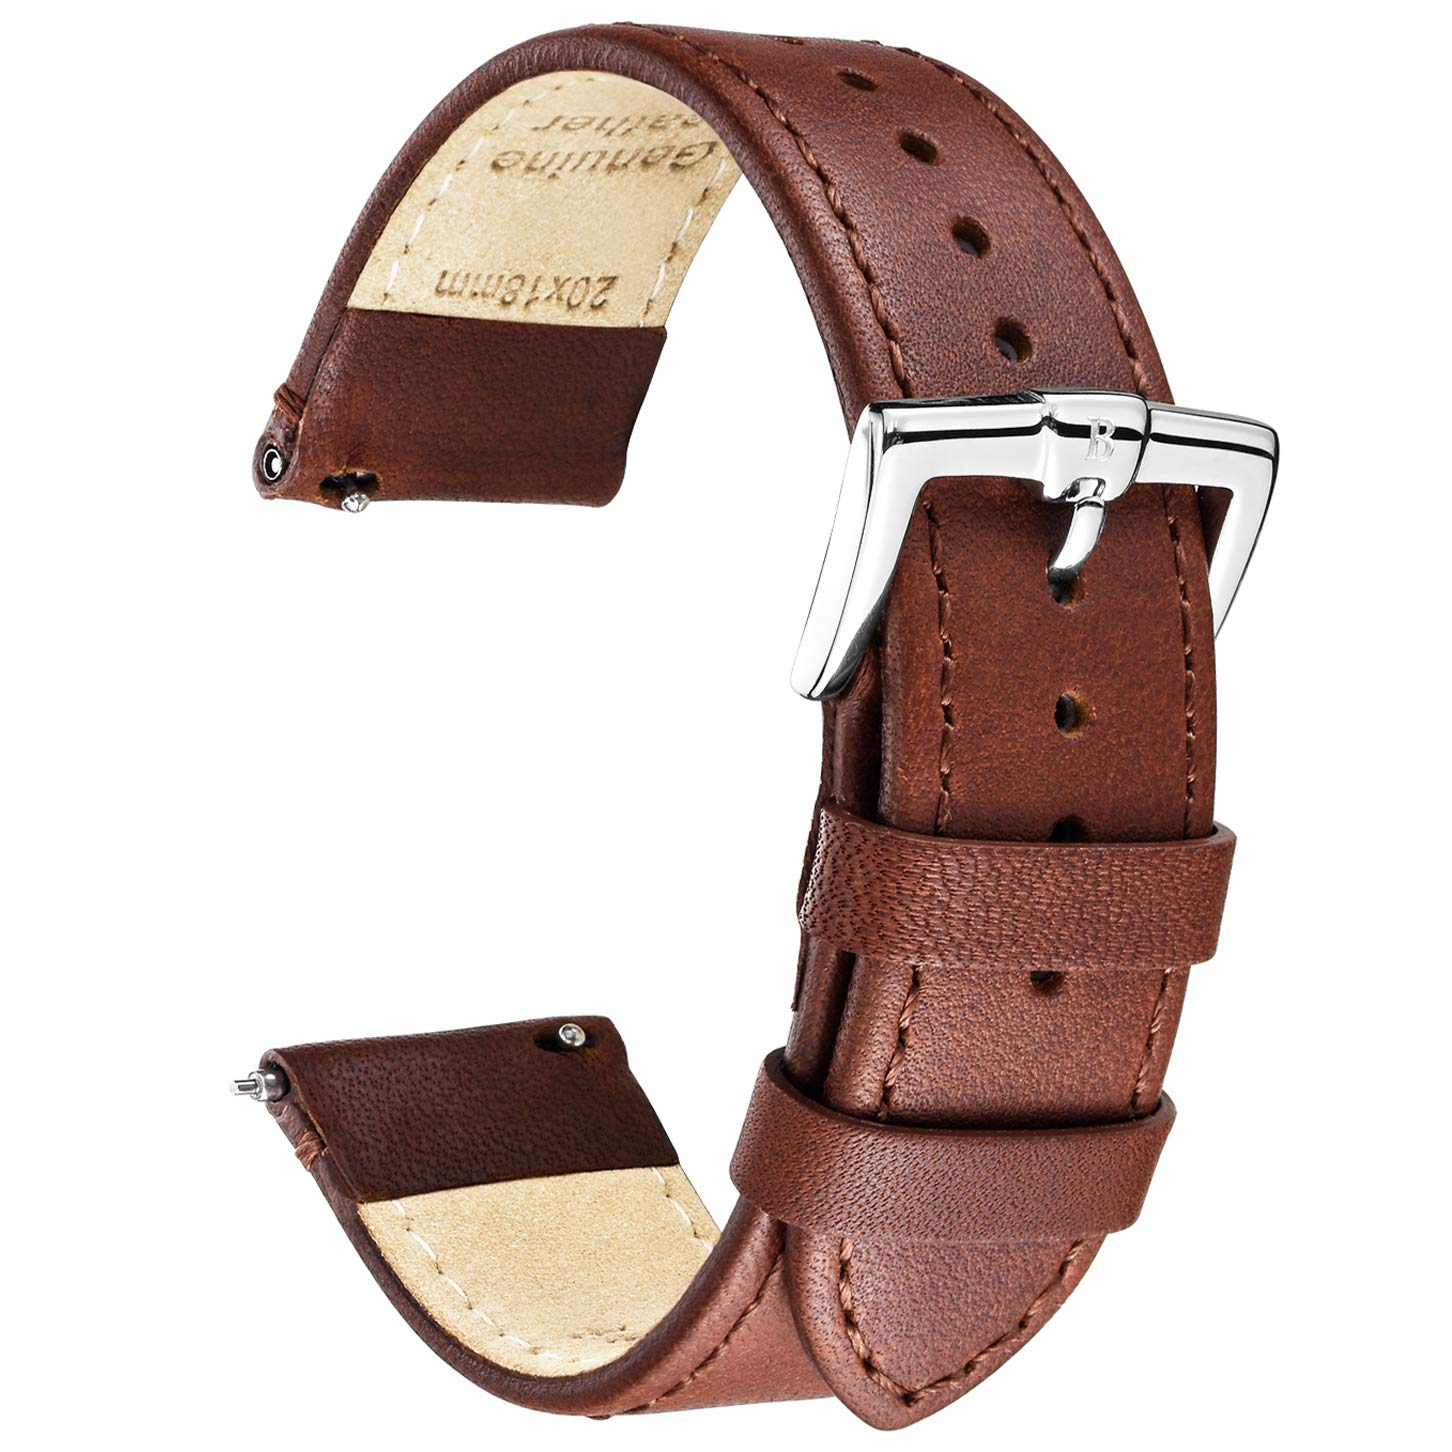 B&E Quick Release Watch Bands Strap Top Smooth Genuine Leather for Men & Women - Lite Vintage Style Wristbands for Traditional & Smart Watch - 16mm 18mm 20mm 22mm 24mm Width Available - DKBNBN22 by BRISMASSI ESETTI